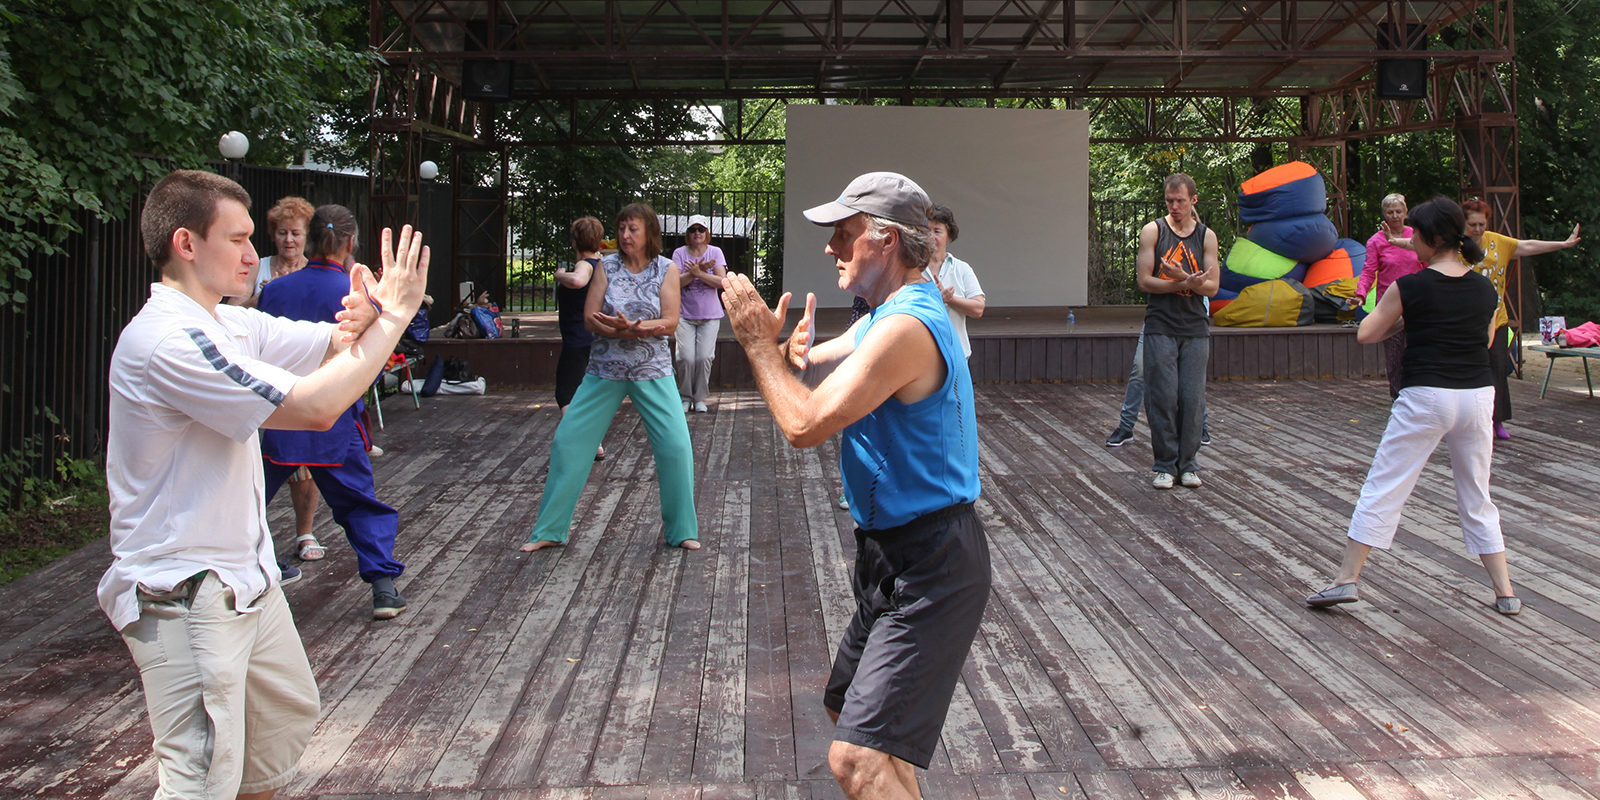 Qigong sessions in Izmailovsky Park | Events | Moscow Seasons